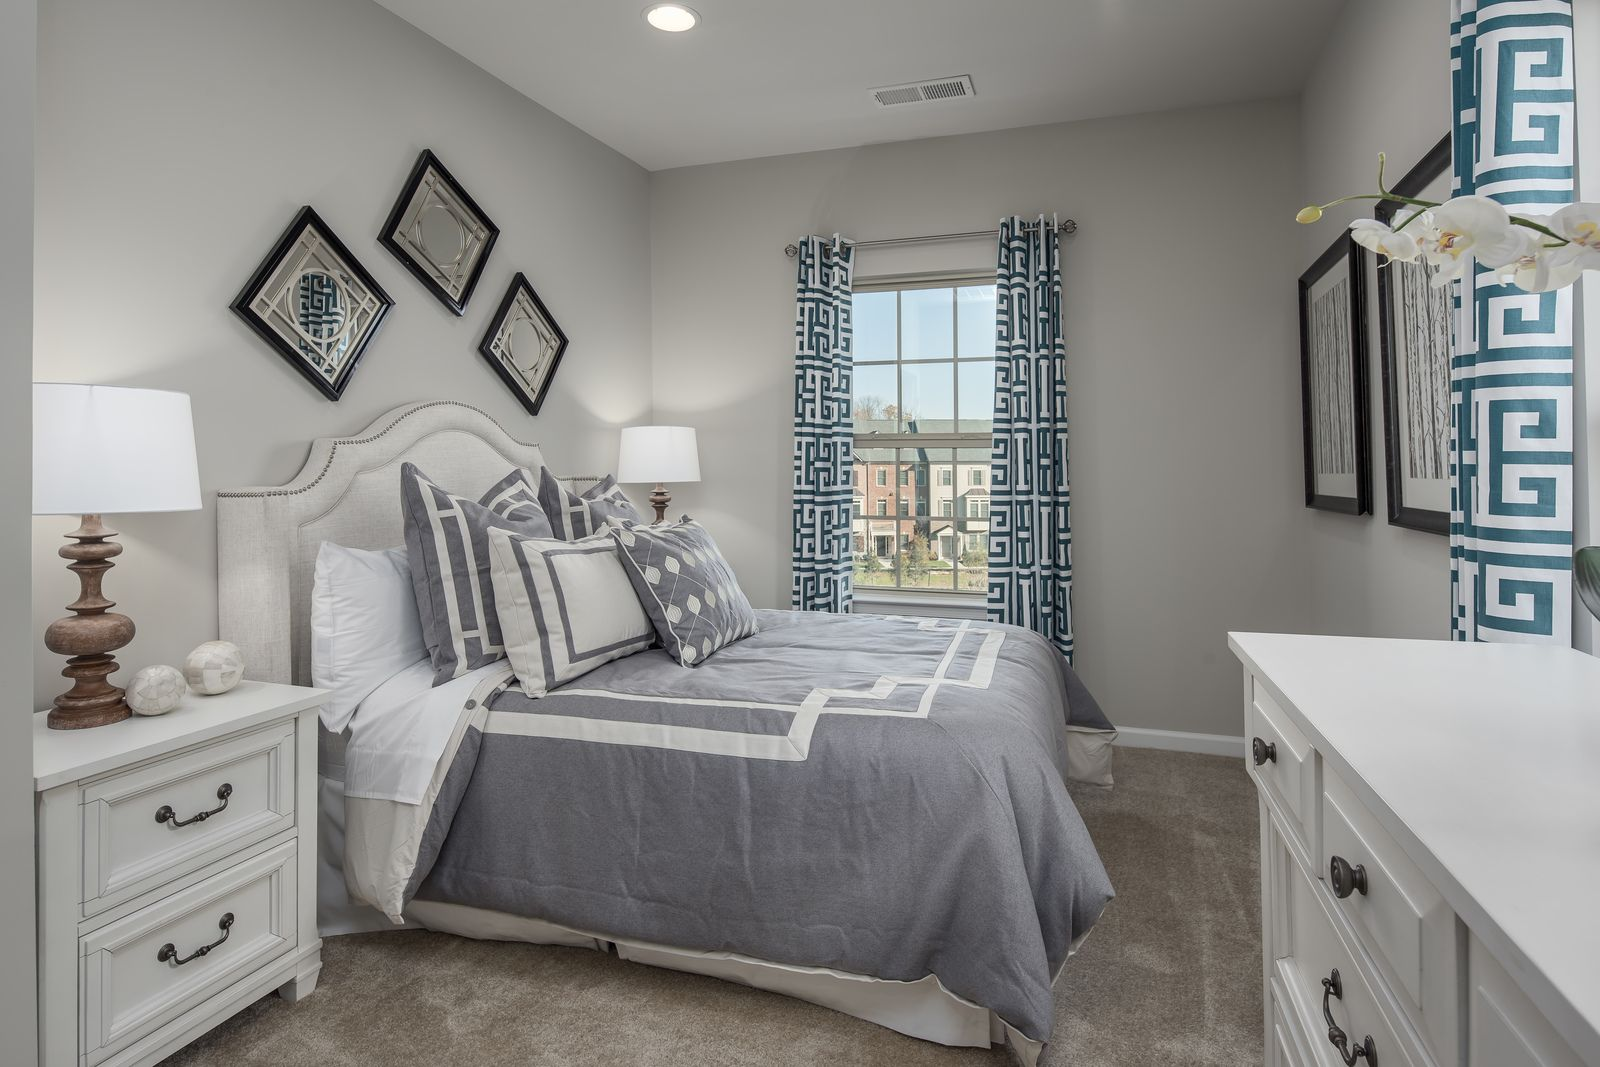 Bedroom featured in the Strauss By Ryan Homes in Charlotte, NC